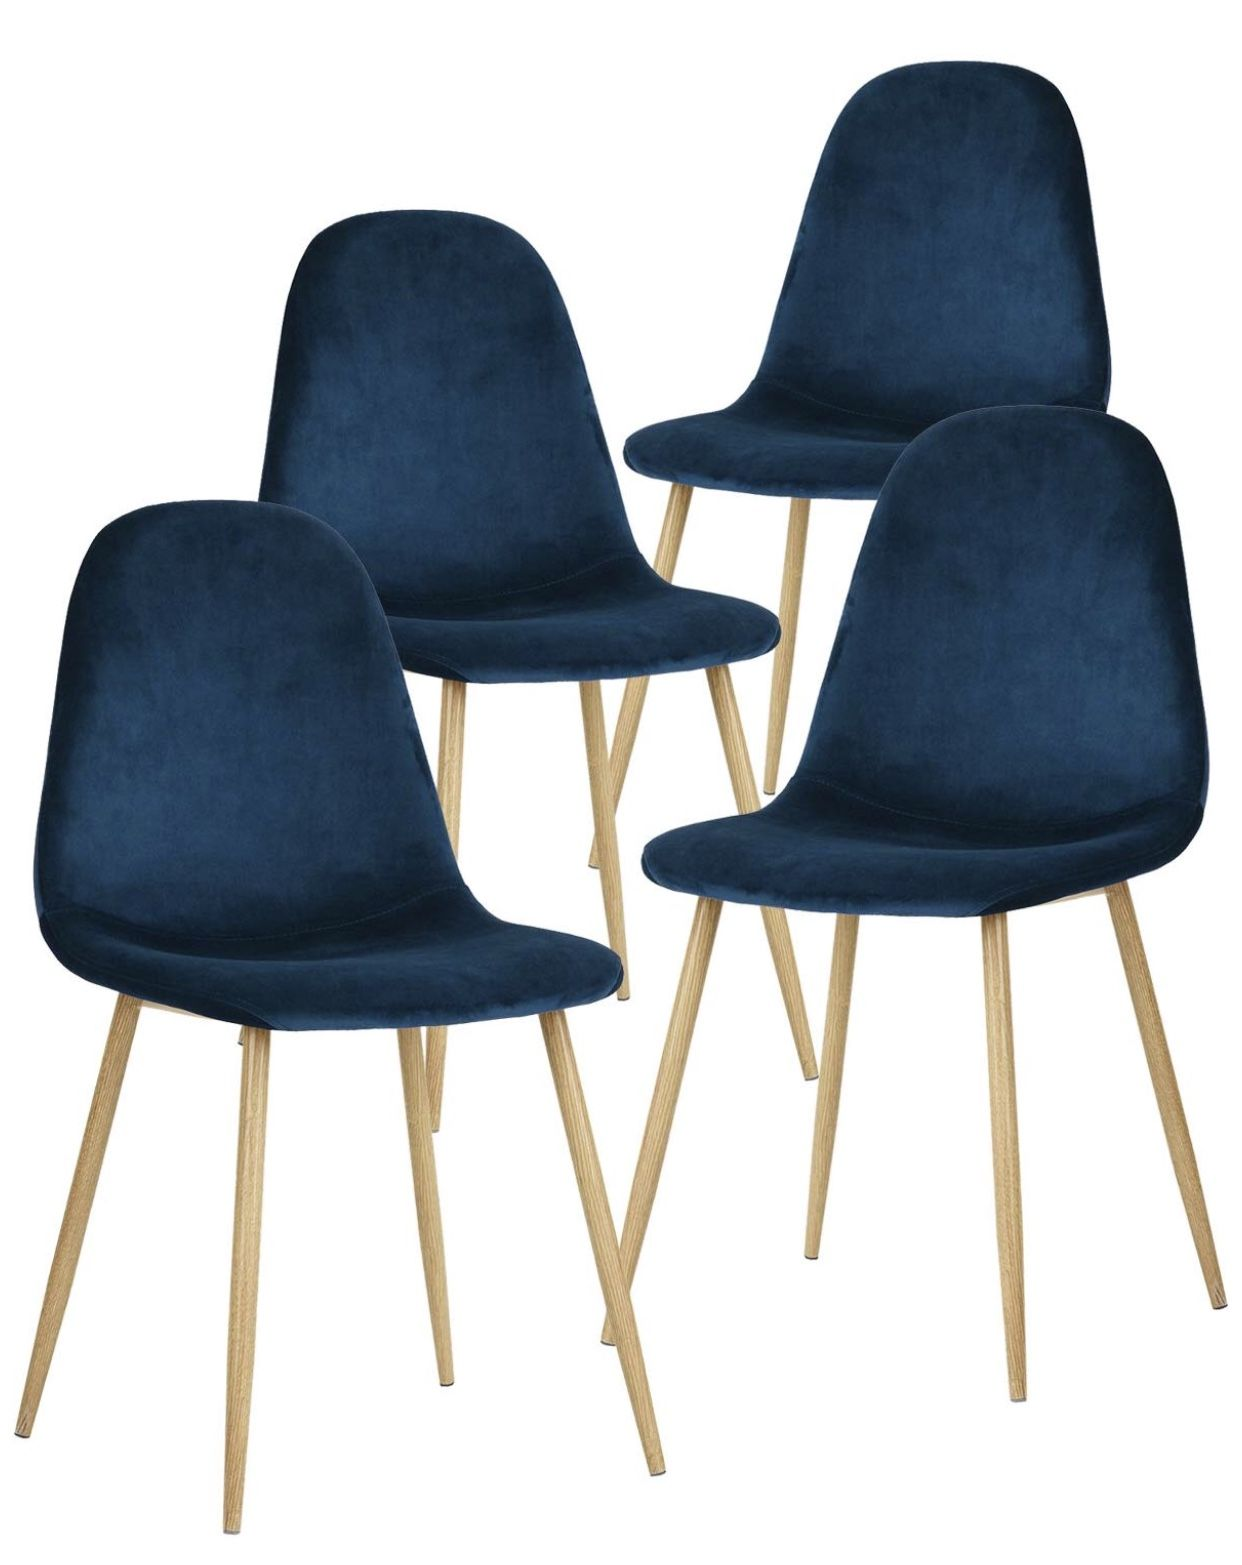 Navy Blue Dining Chairs on Amazon (Set of 4) Modern side